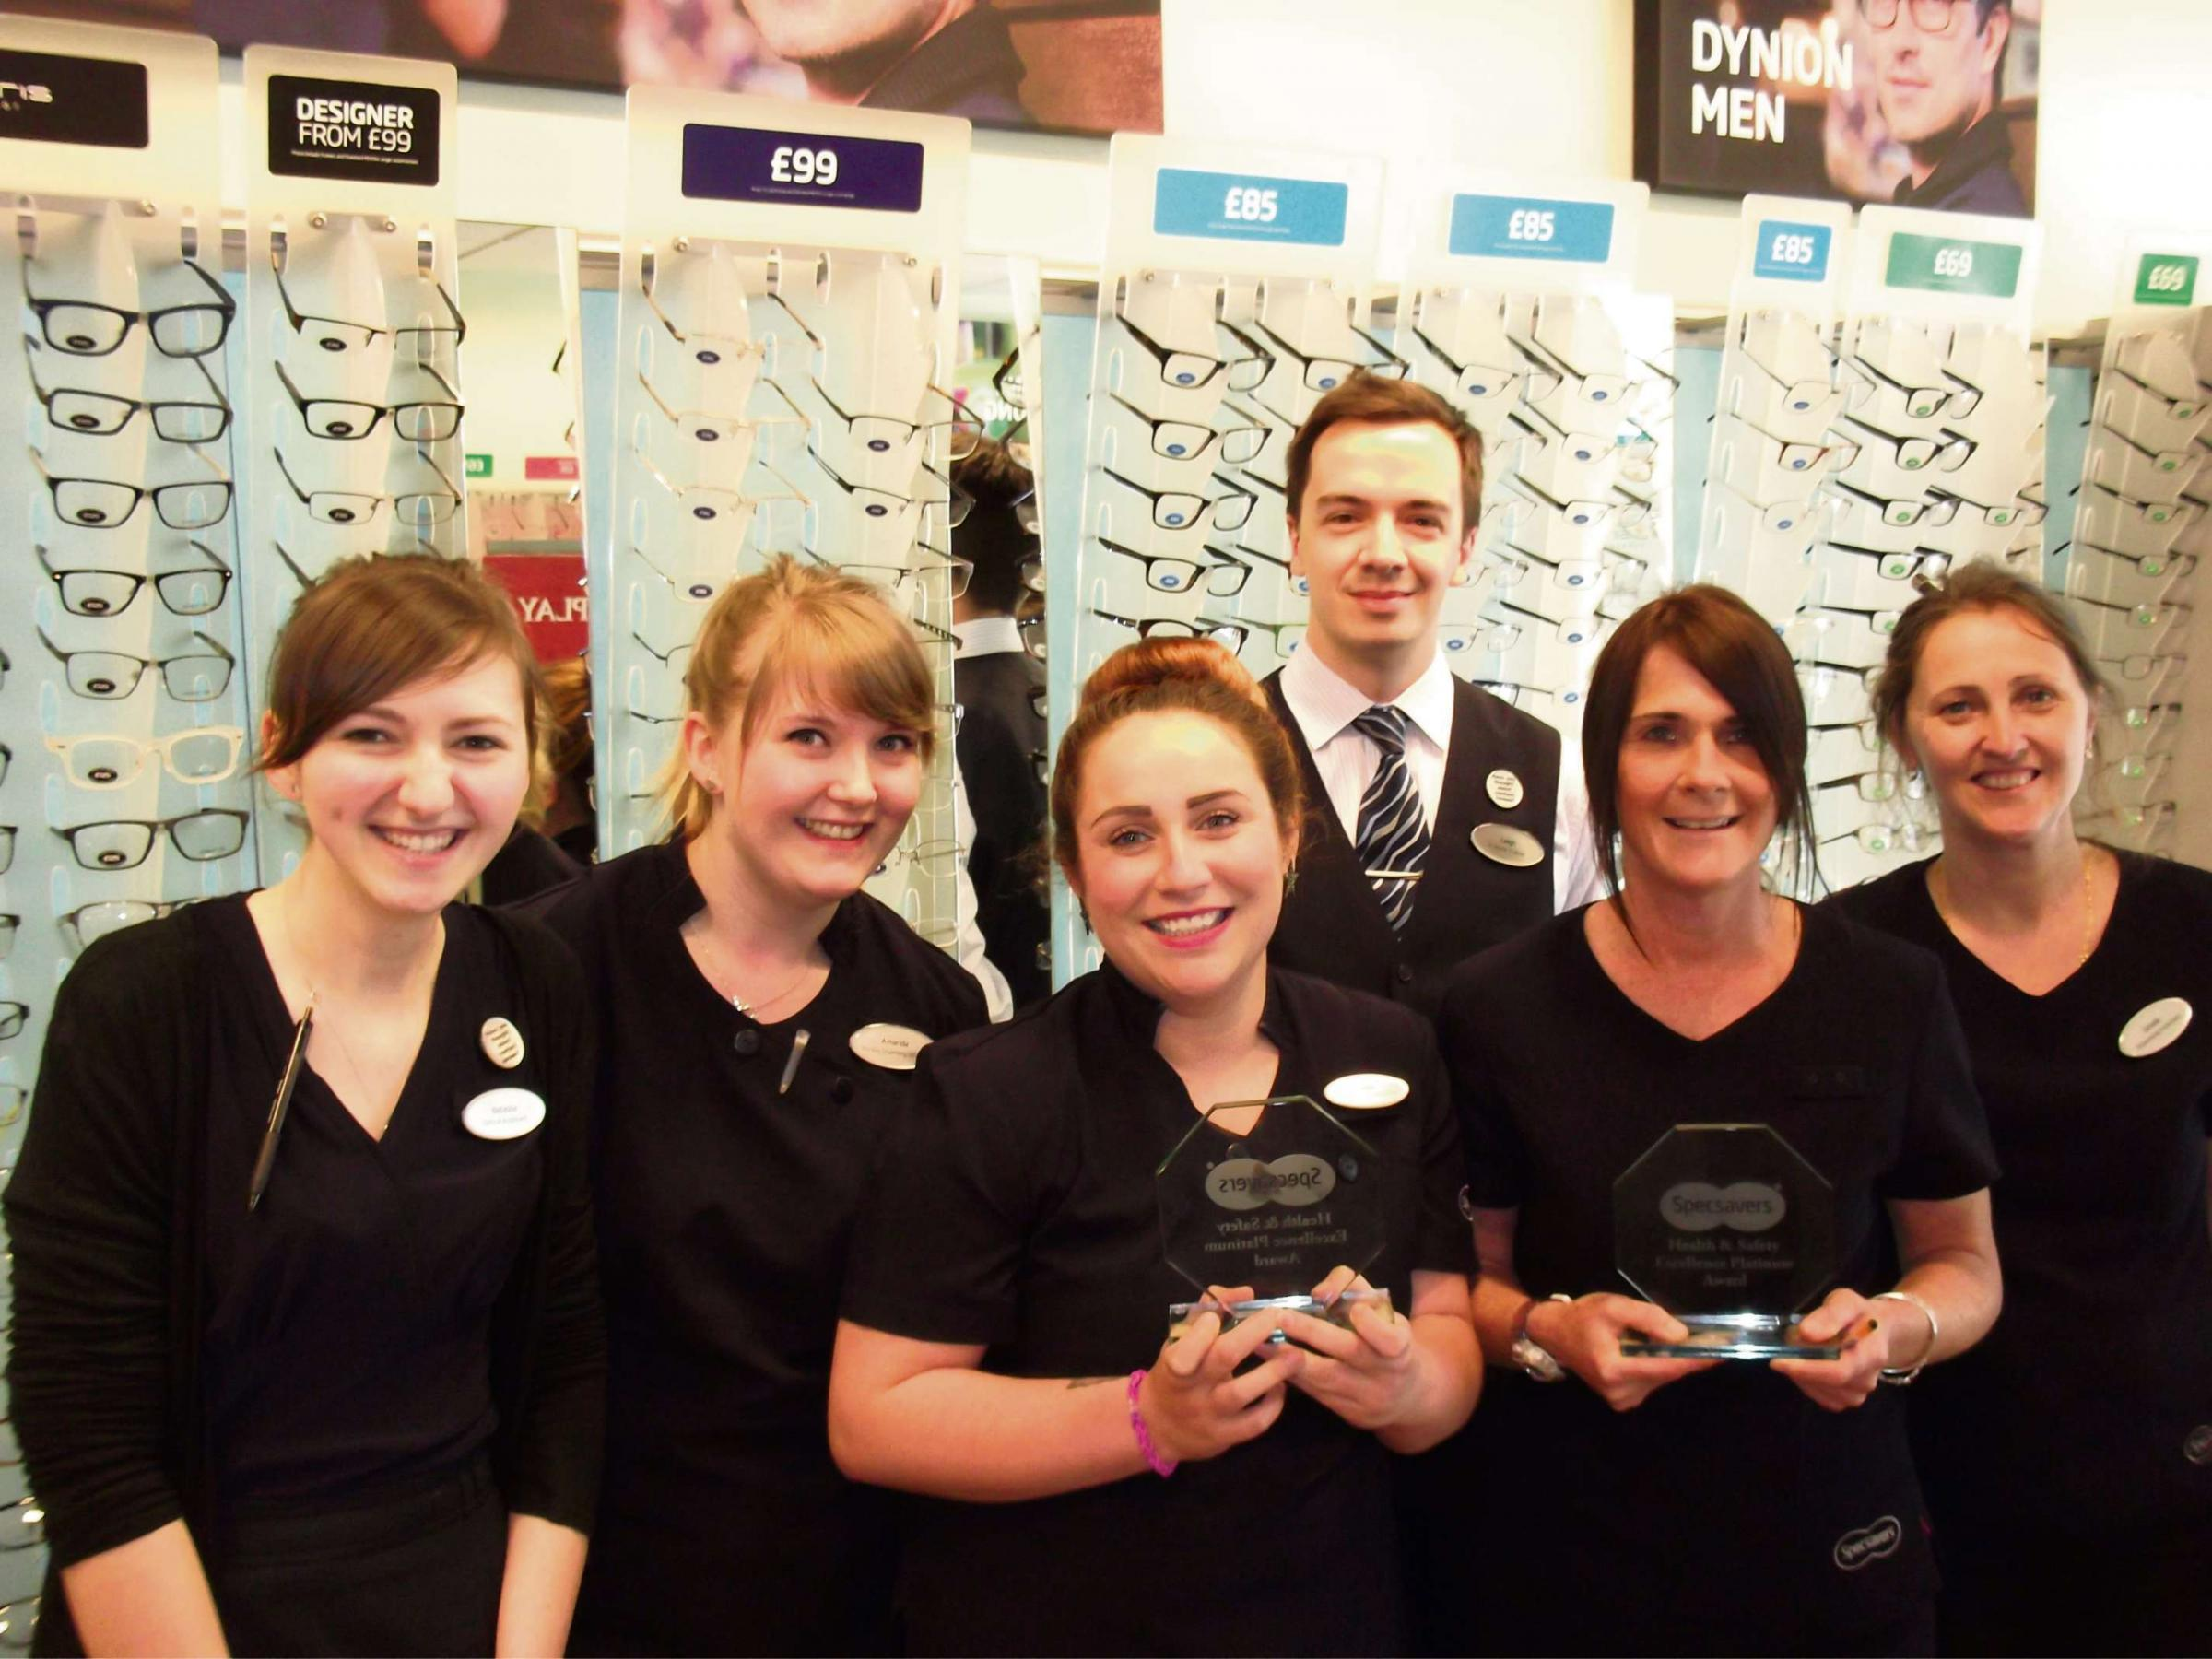 RECOGNISED: Specsavers staff members Natasha Holland, Amanda Brown, Daisy Mayne, Leigh Whitfield, Kath McNicholas, store manager, and Ursula Coulthard